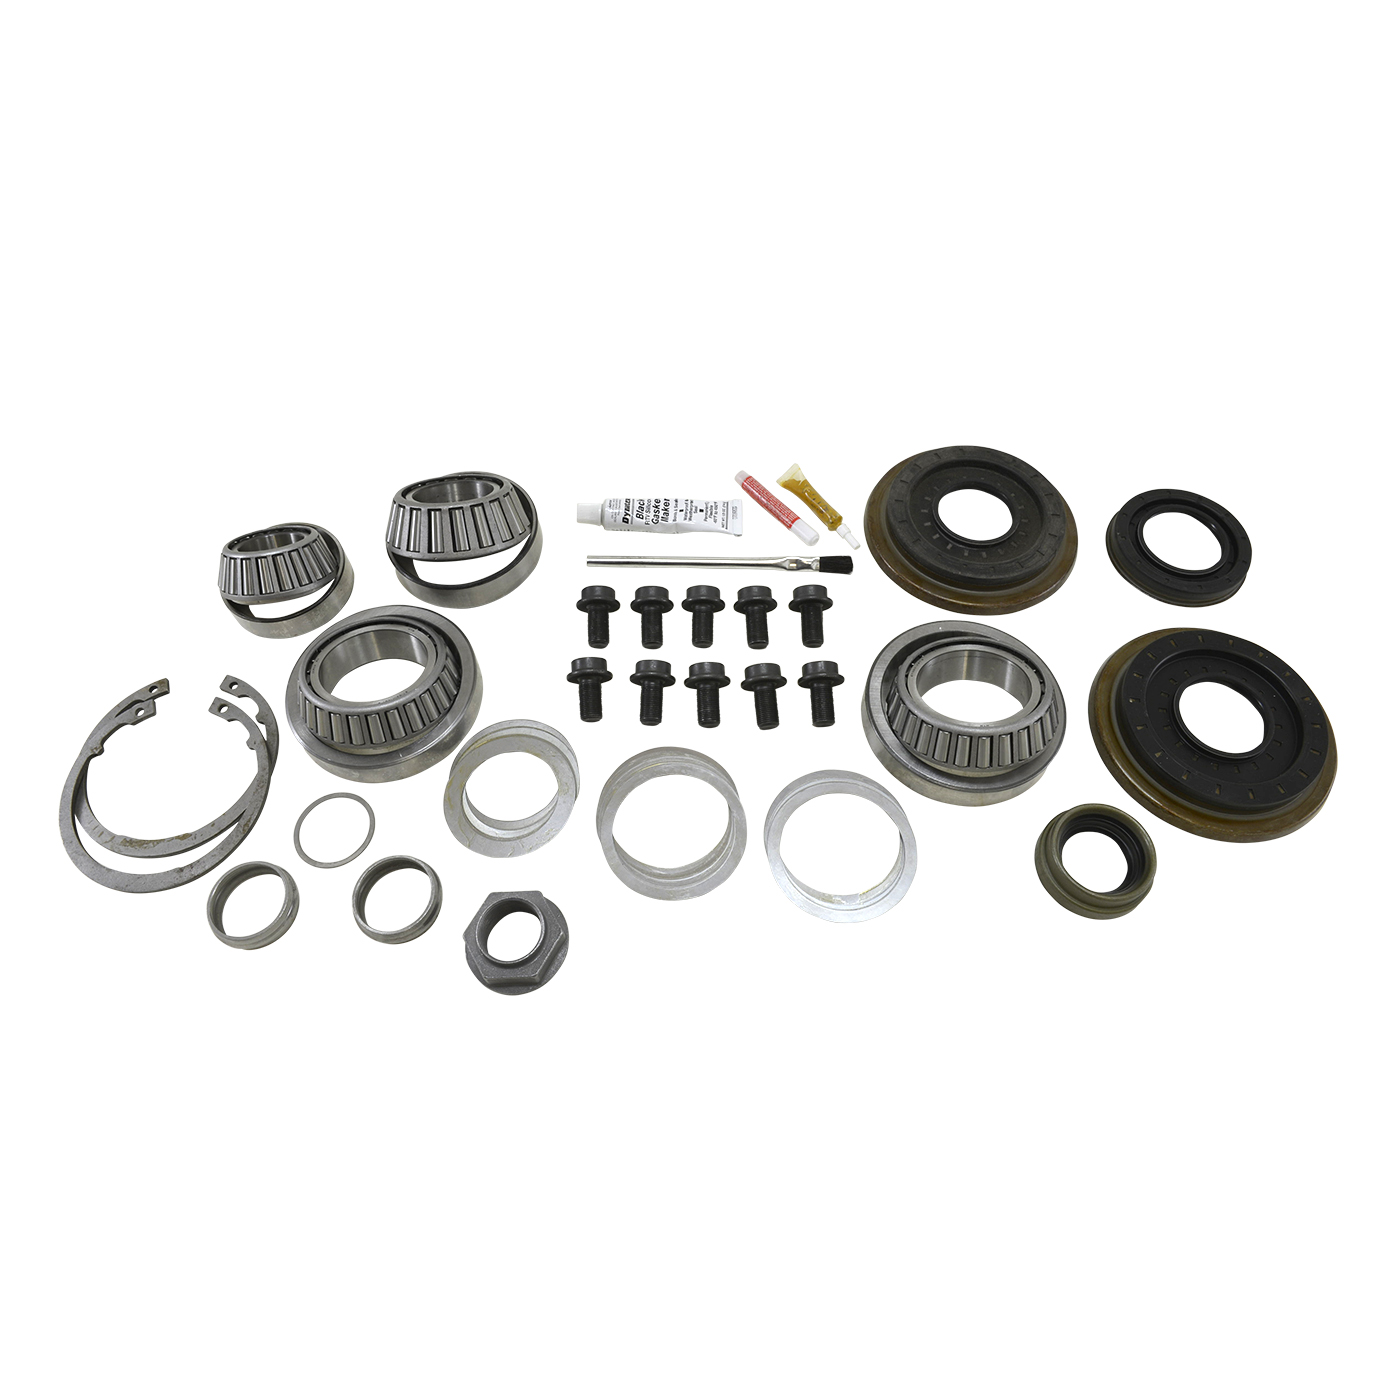 YK C200 - Yukon Master Overhaul kit for C200 IFS front differential